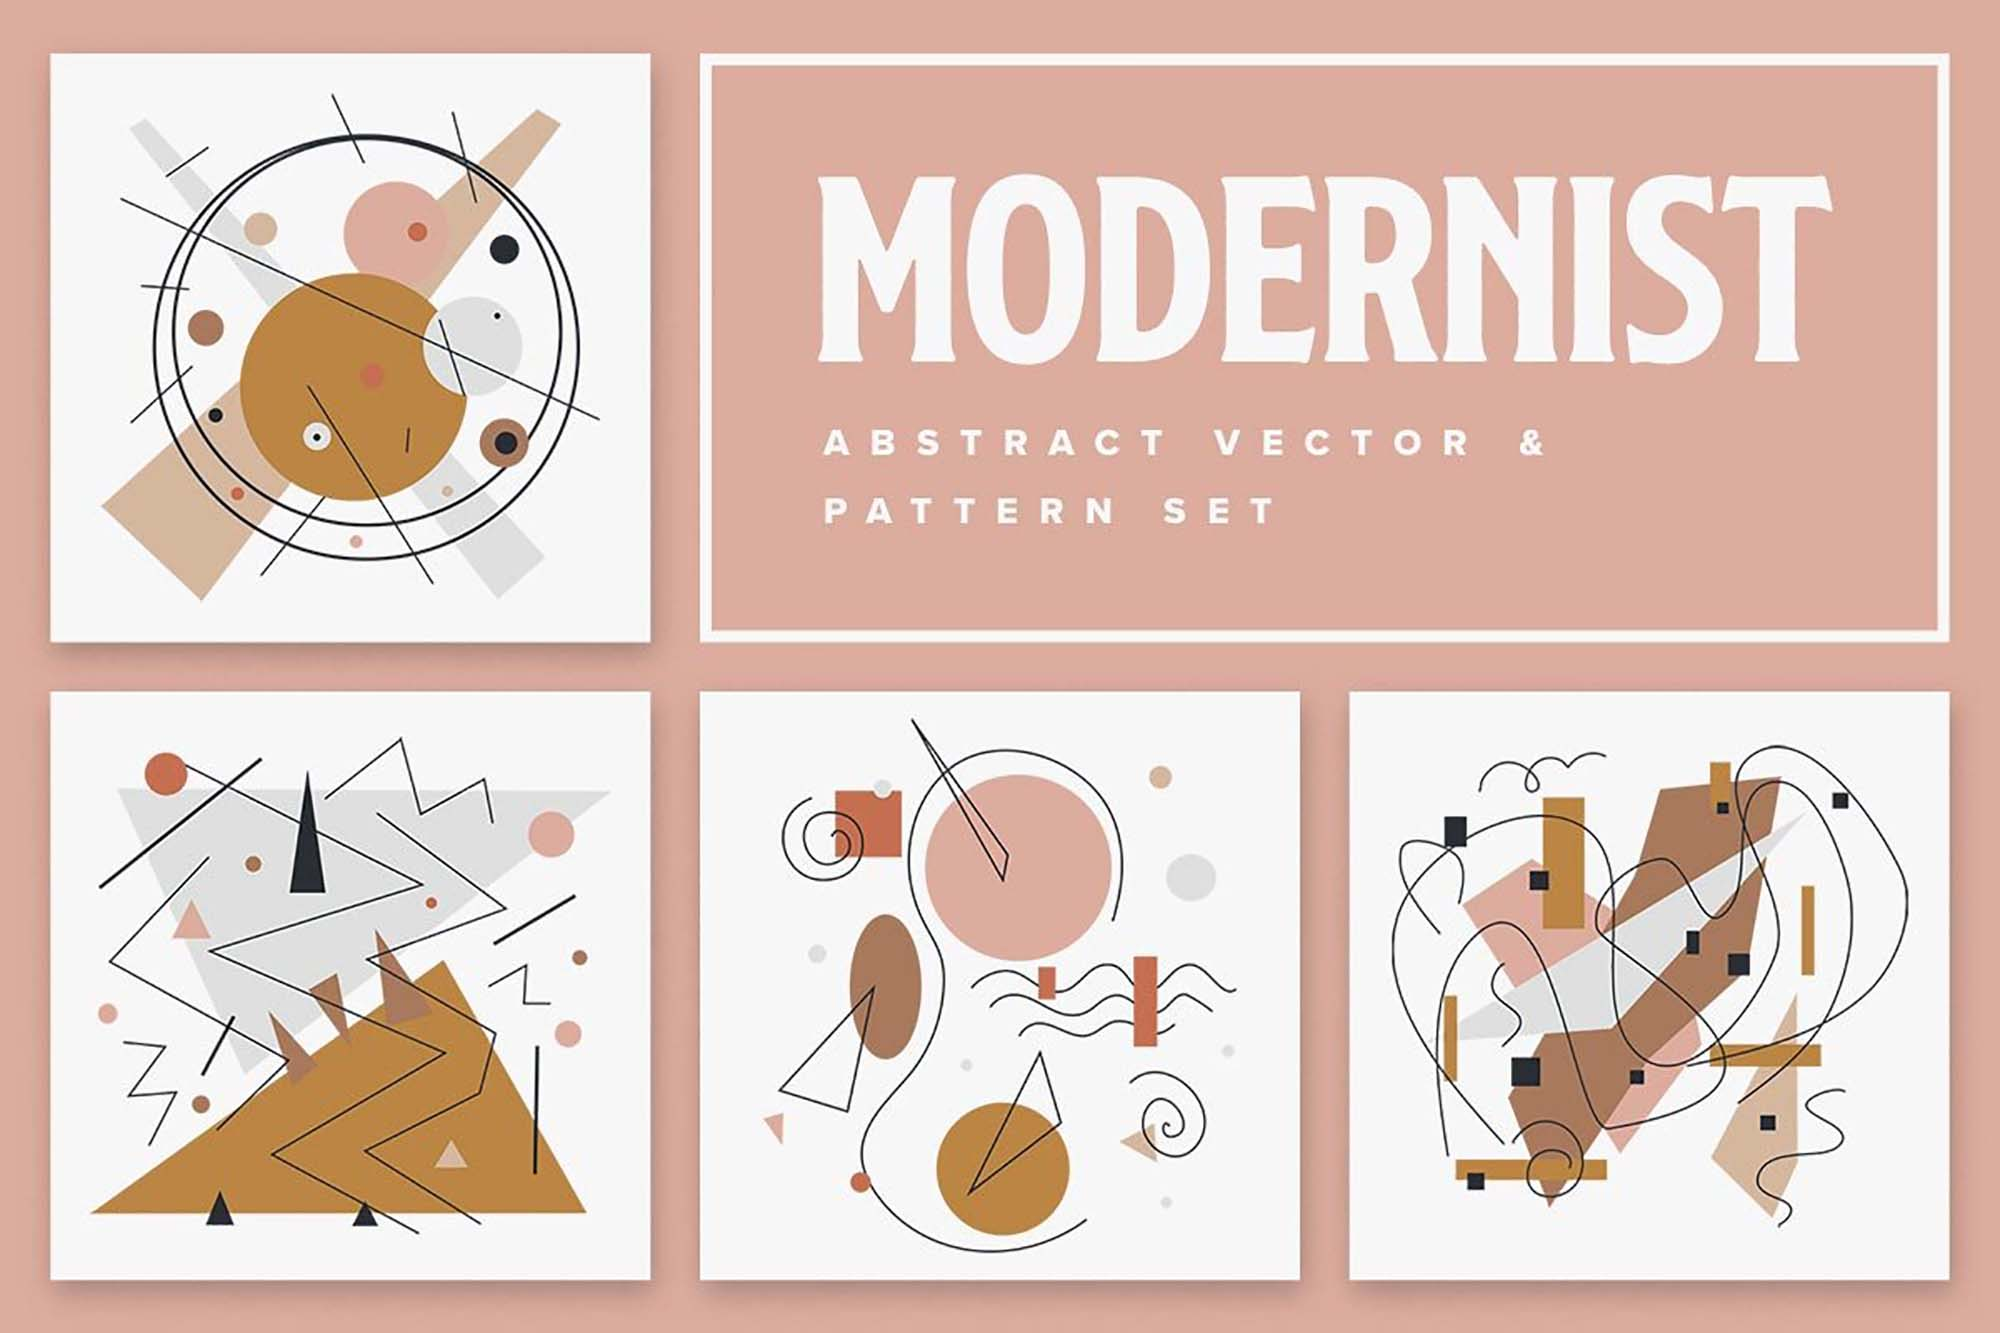 Modernist Abstract Vector Patterns